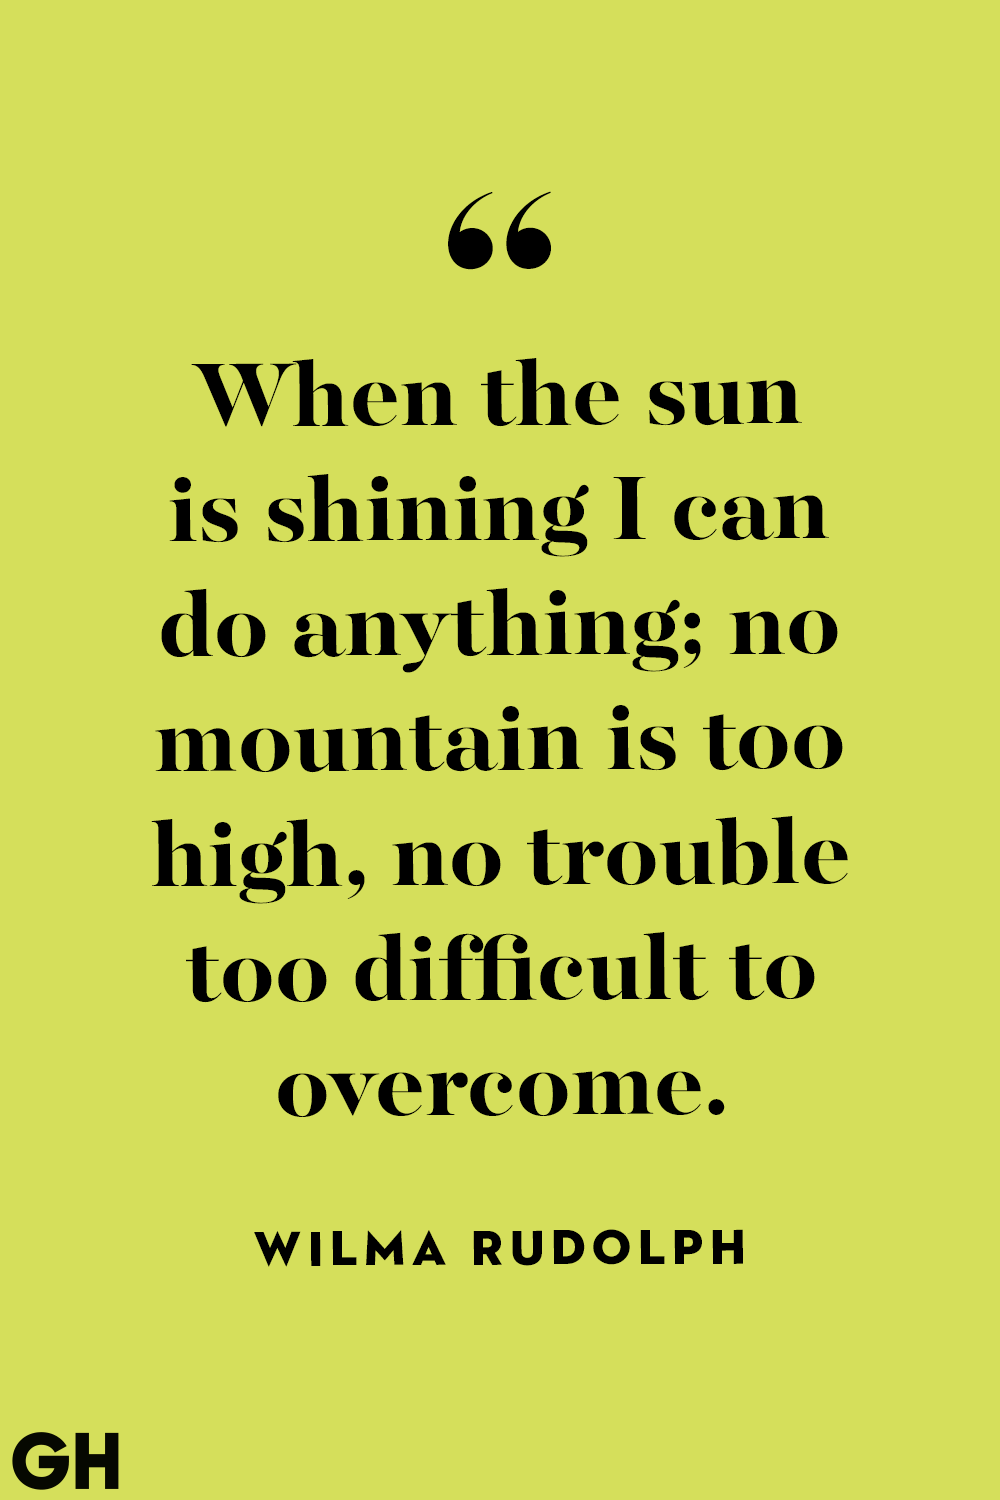 25 Best Summer Quotes - Lovely Sayings About Summertime